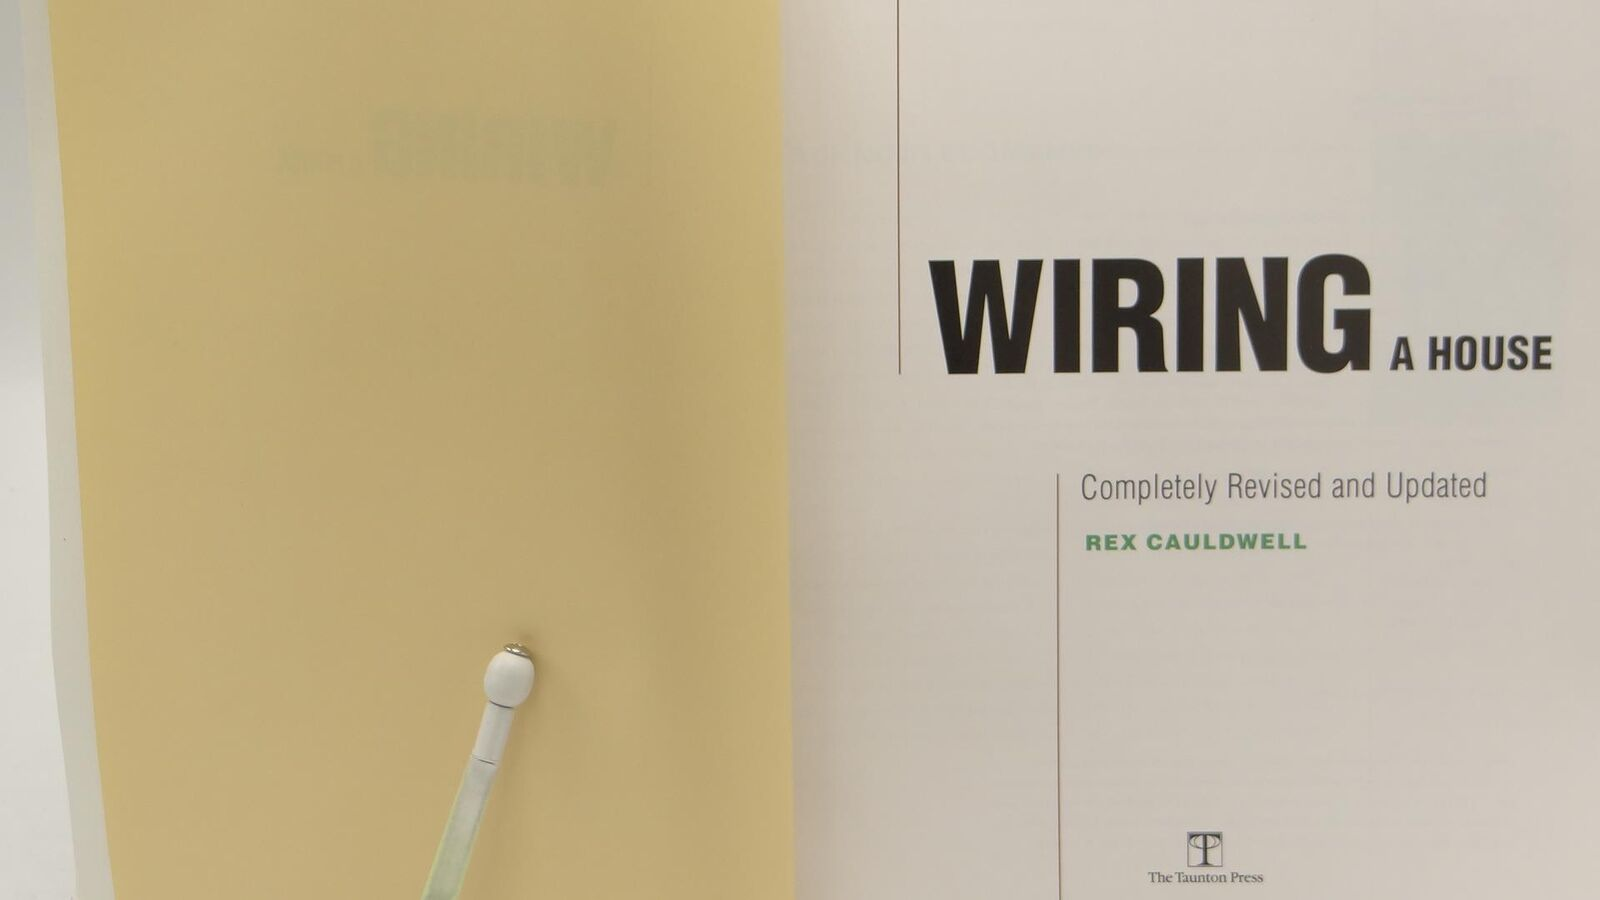 Incredible For Pros By Pros Wiring A House By Rex Cauldwell 2002 Paperback Wiring Cloud Xeiraioscosaoduqqnet